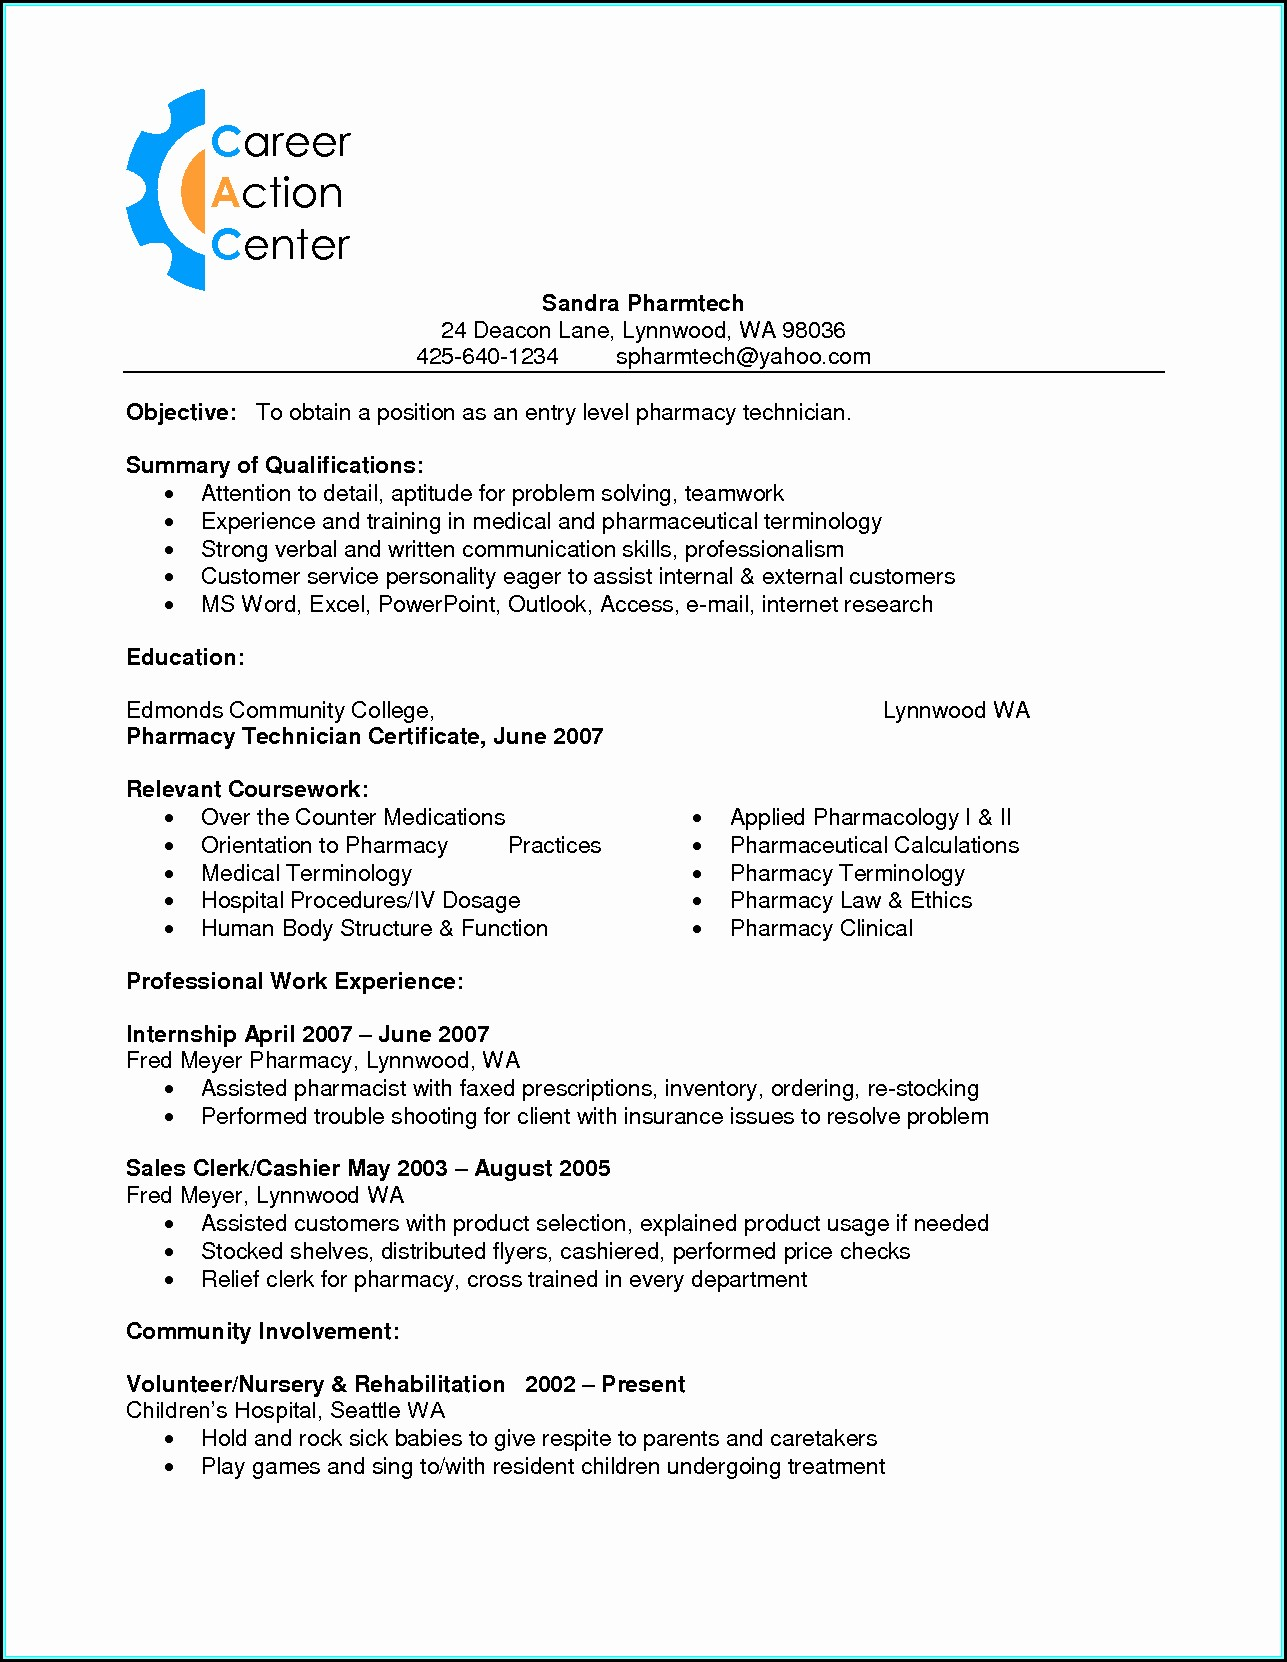 Resume For A Pharmacy Technician With No Experience